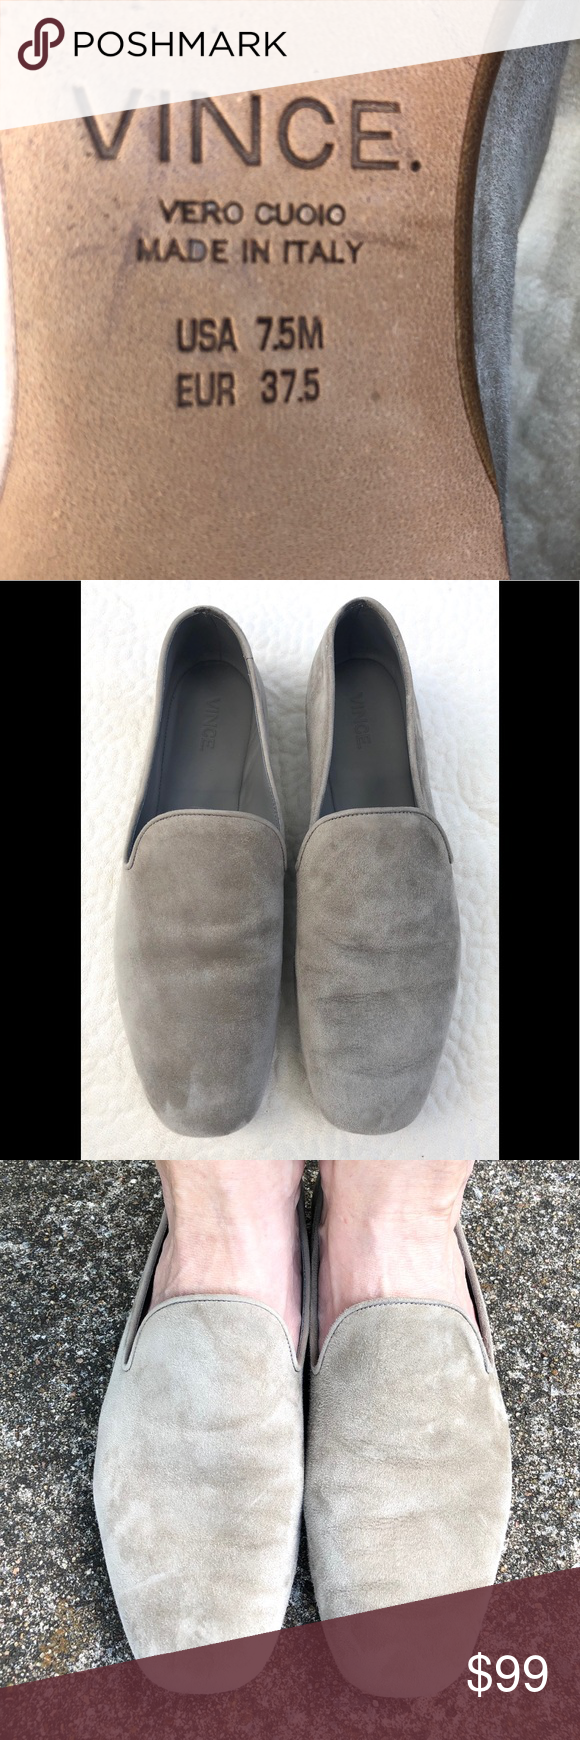 d9b61d5a96b VINCE grey suede MILO flats shoes 7.5 37.5 loafers Vince s Milo loafers flats  in pewter